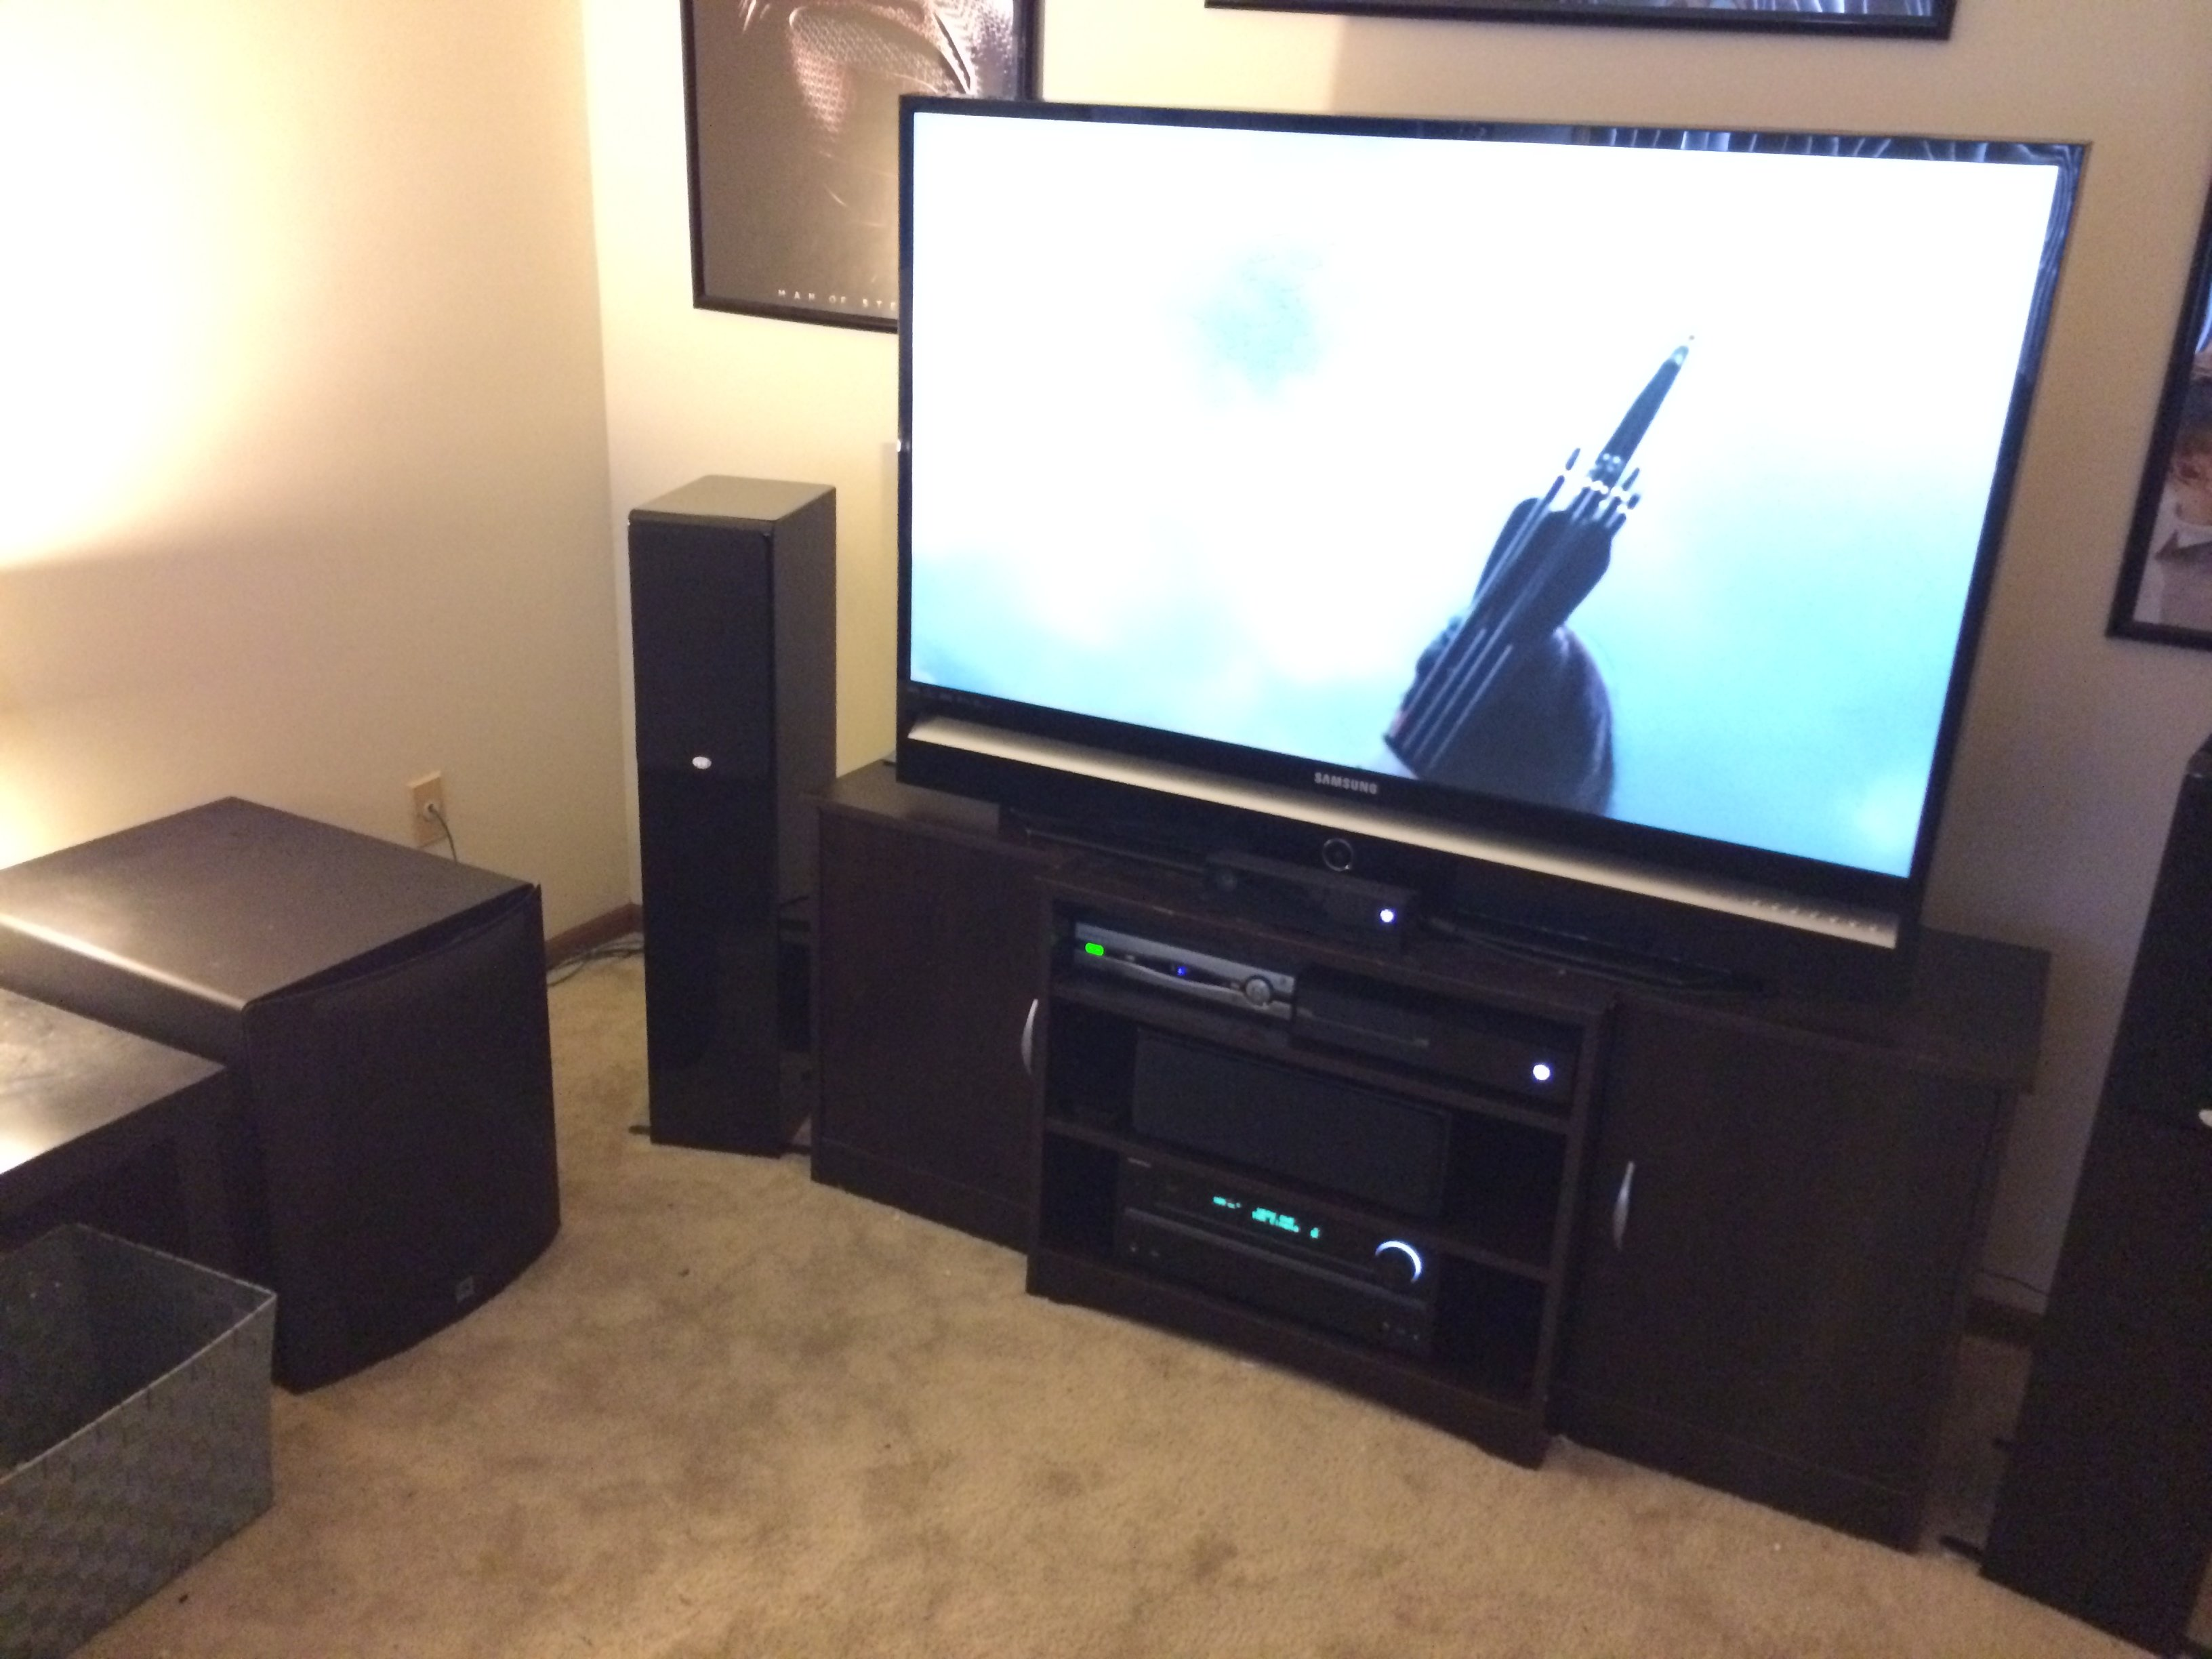 New Apartment Media Room Updated Avs Forum Home Theater Discussions And Reviews